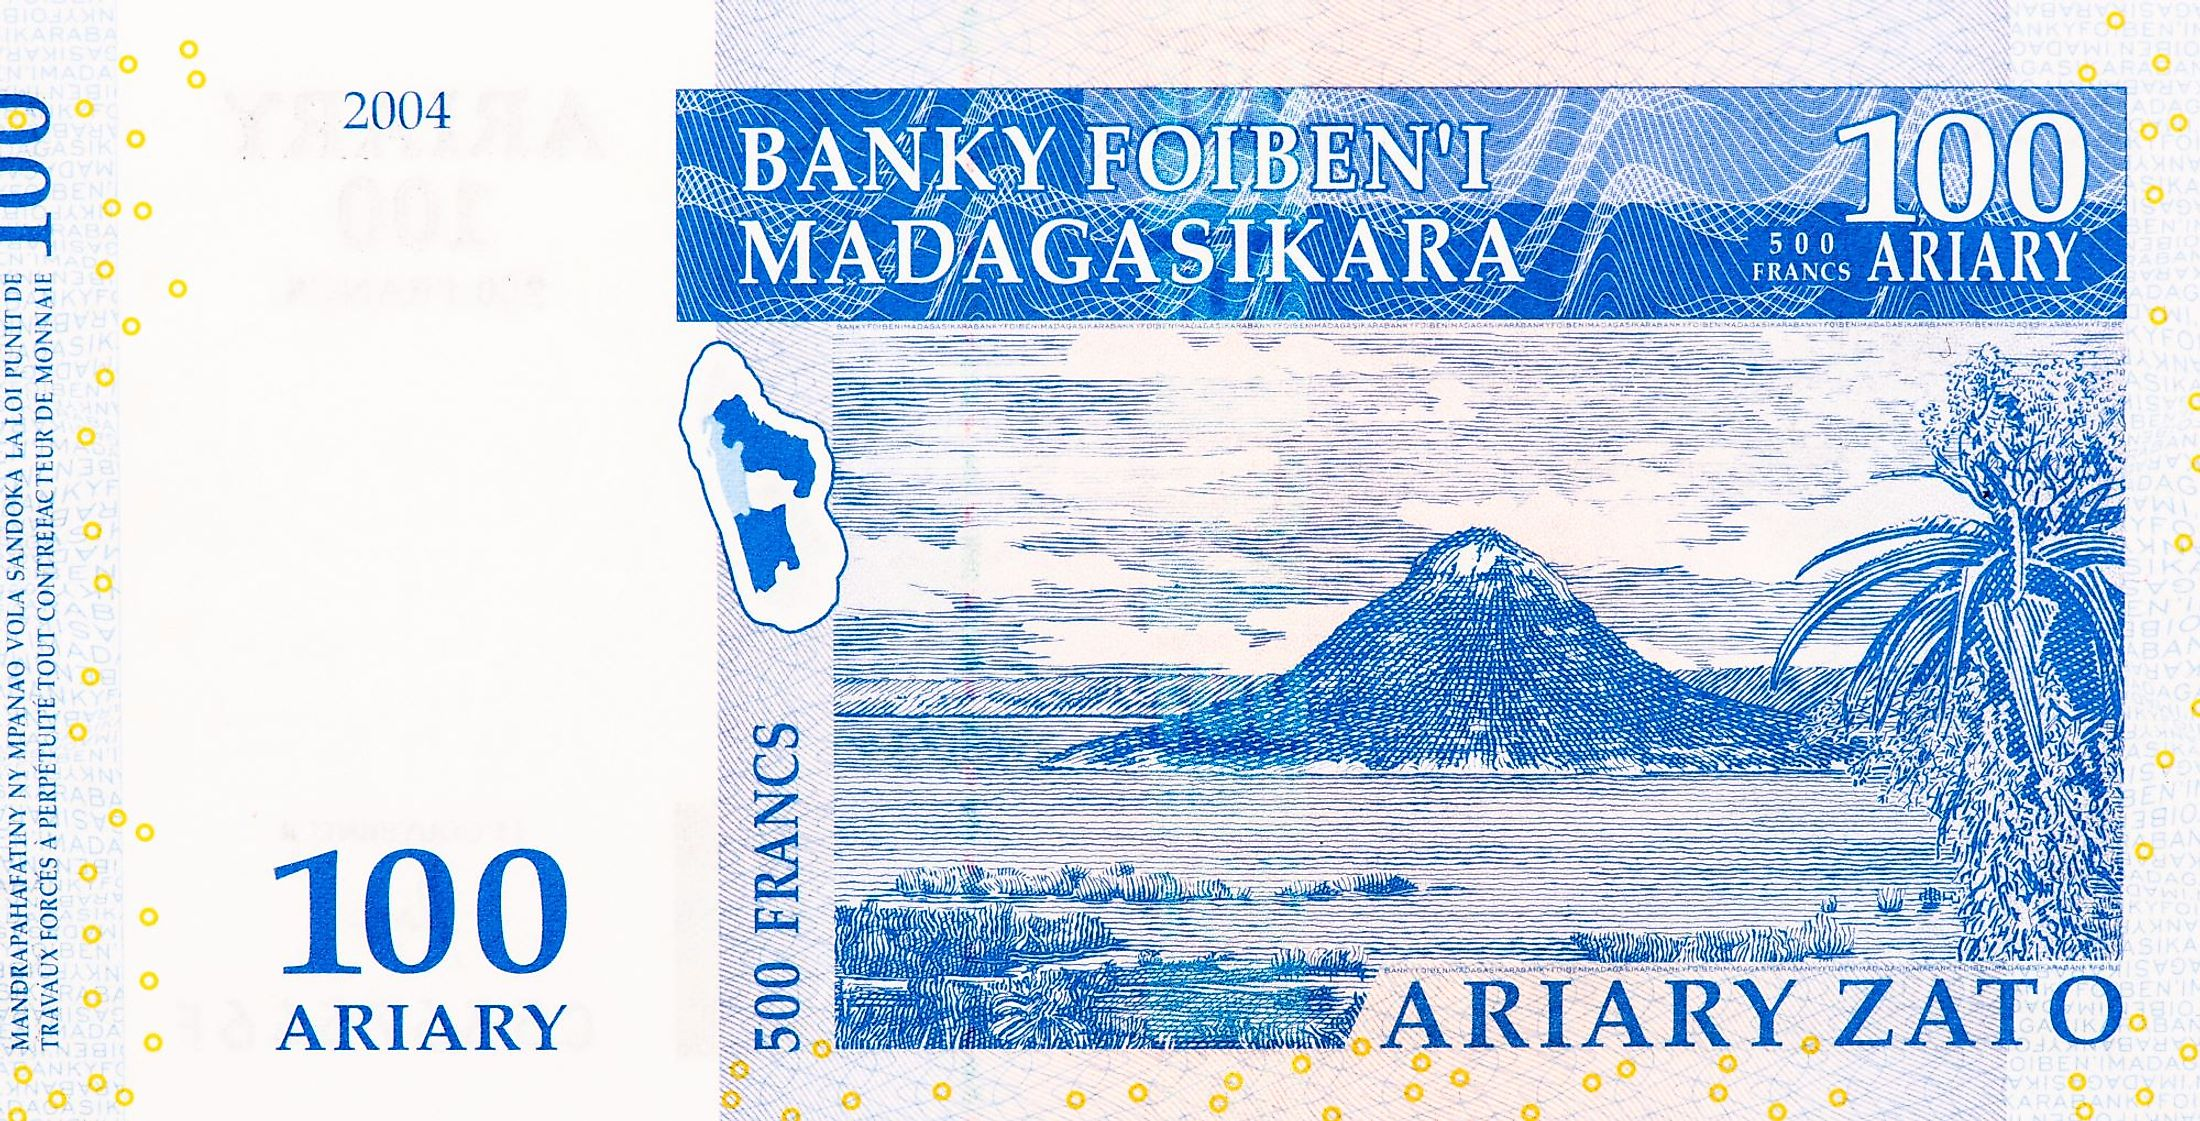 A Malagasy ariary note.